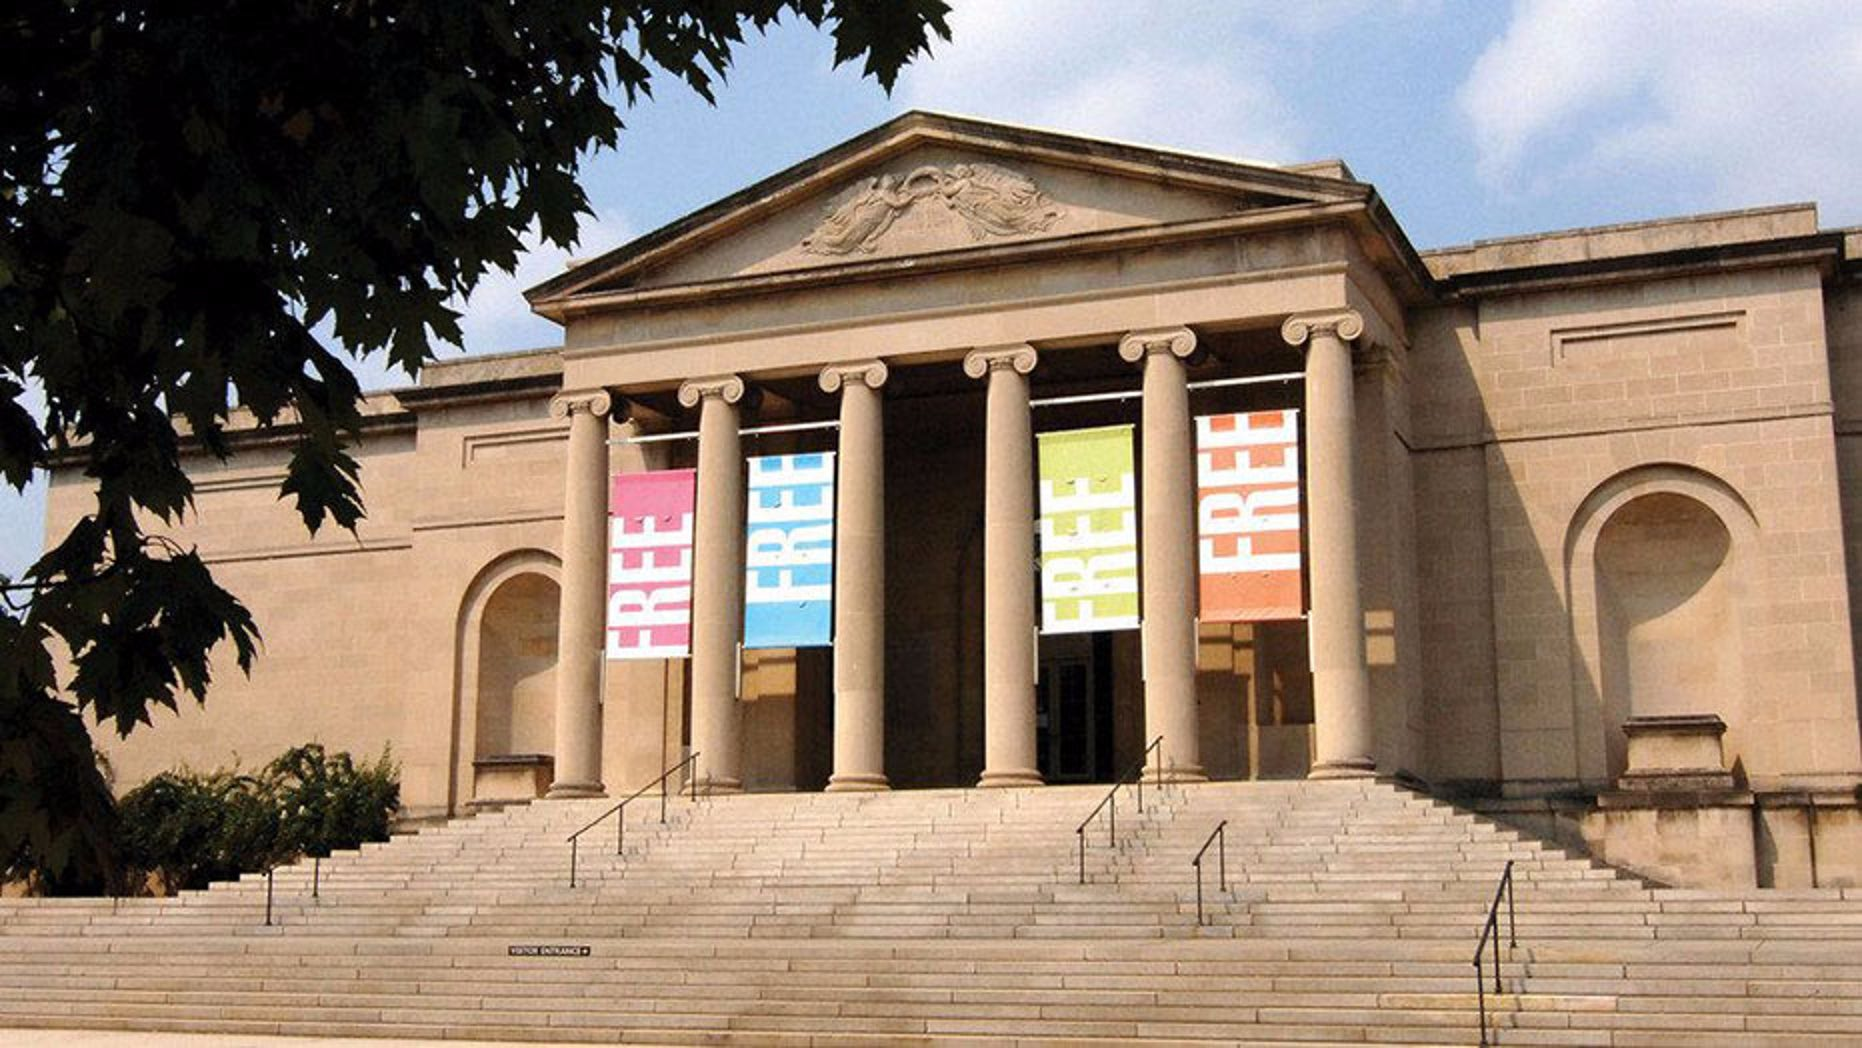 The Baltimore Museum of Art is selling works by white men, including Andy Warhol, to make room for paintings and other pieces by black and female artists.